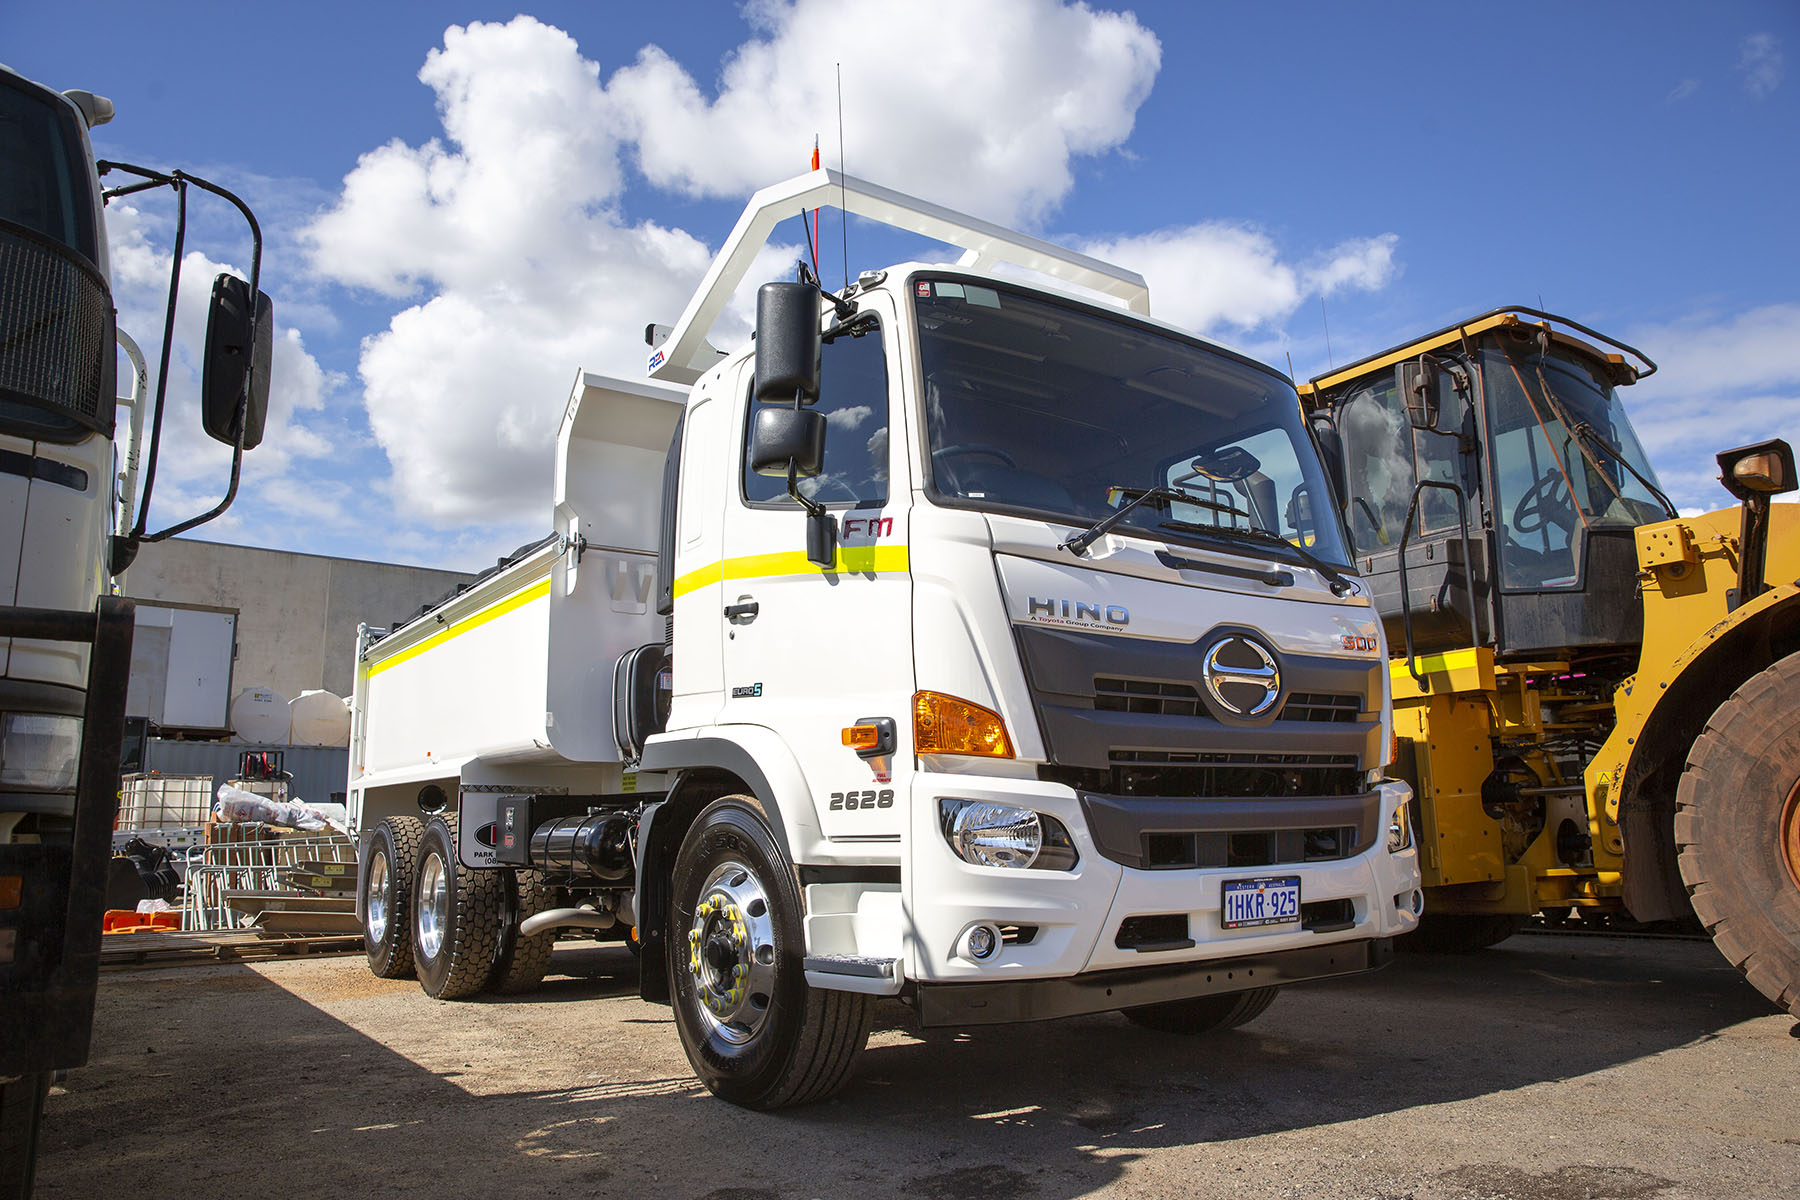 Hino 6 wheel tipper truck front side view